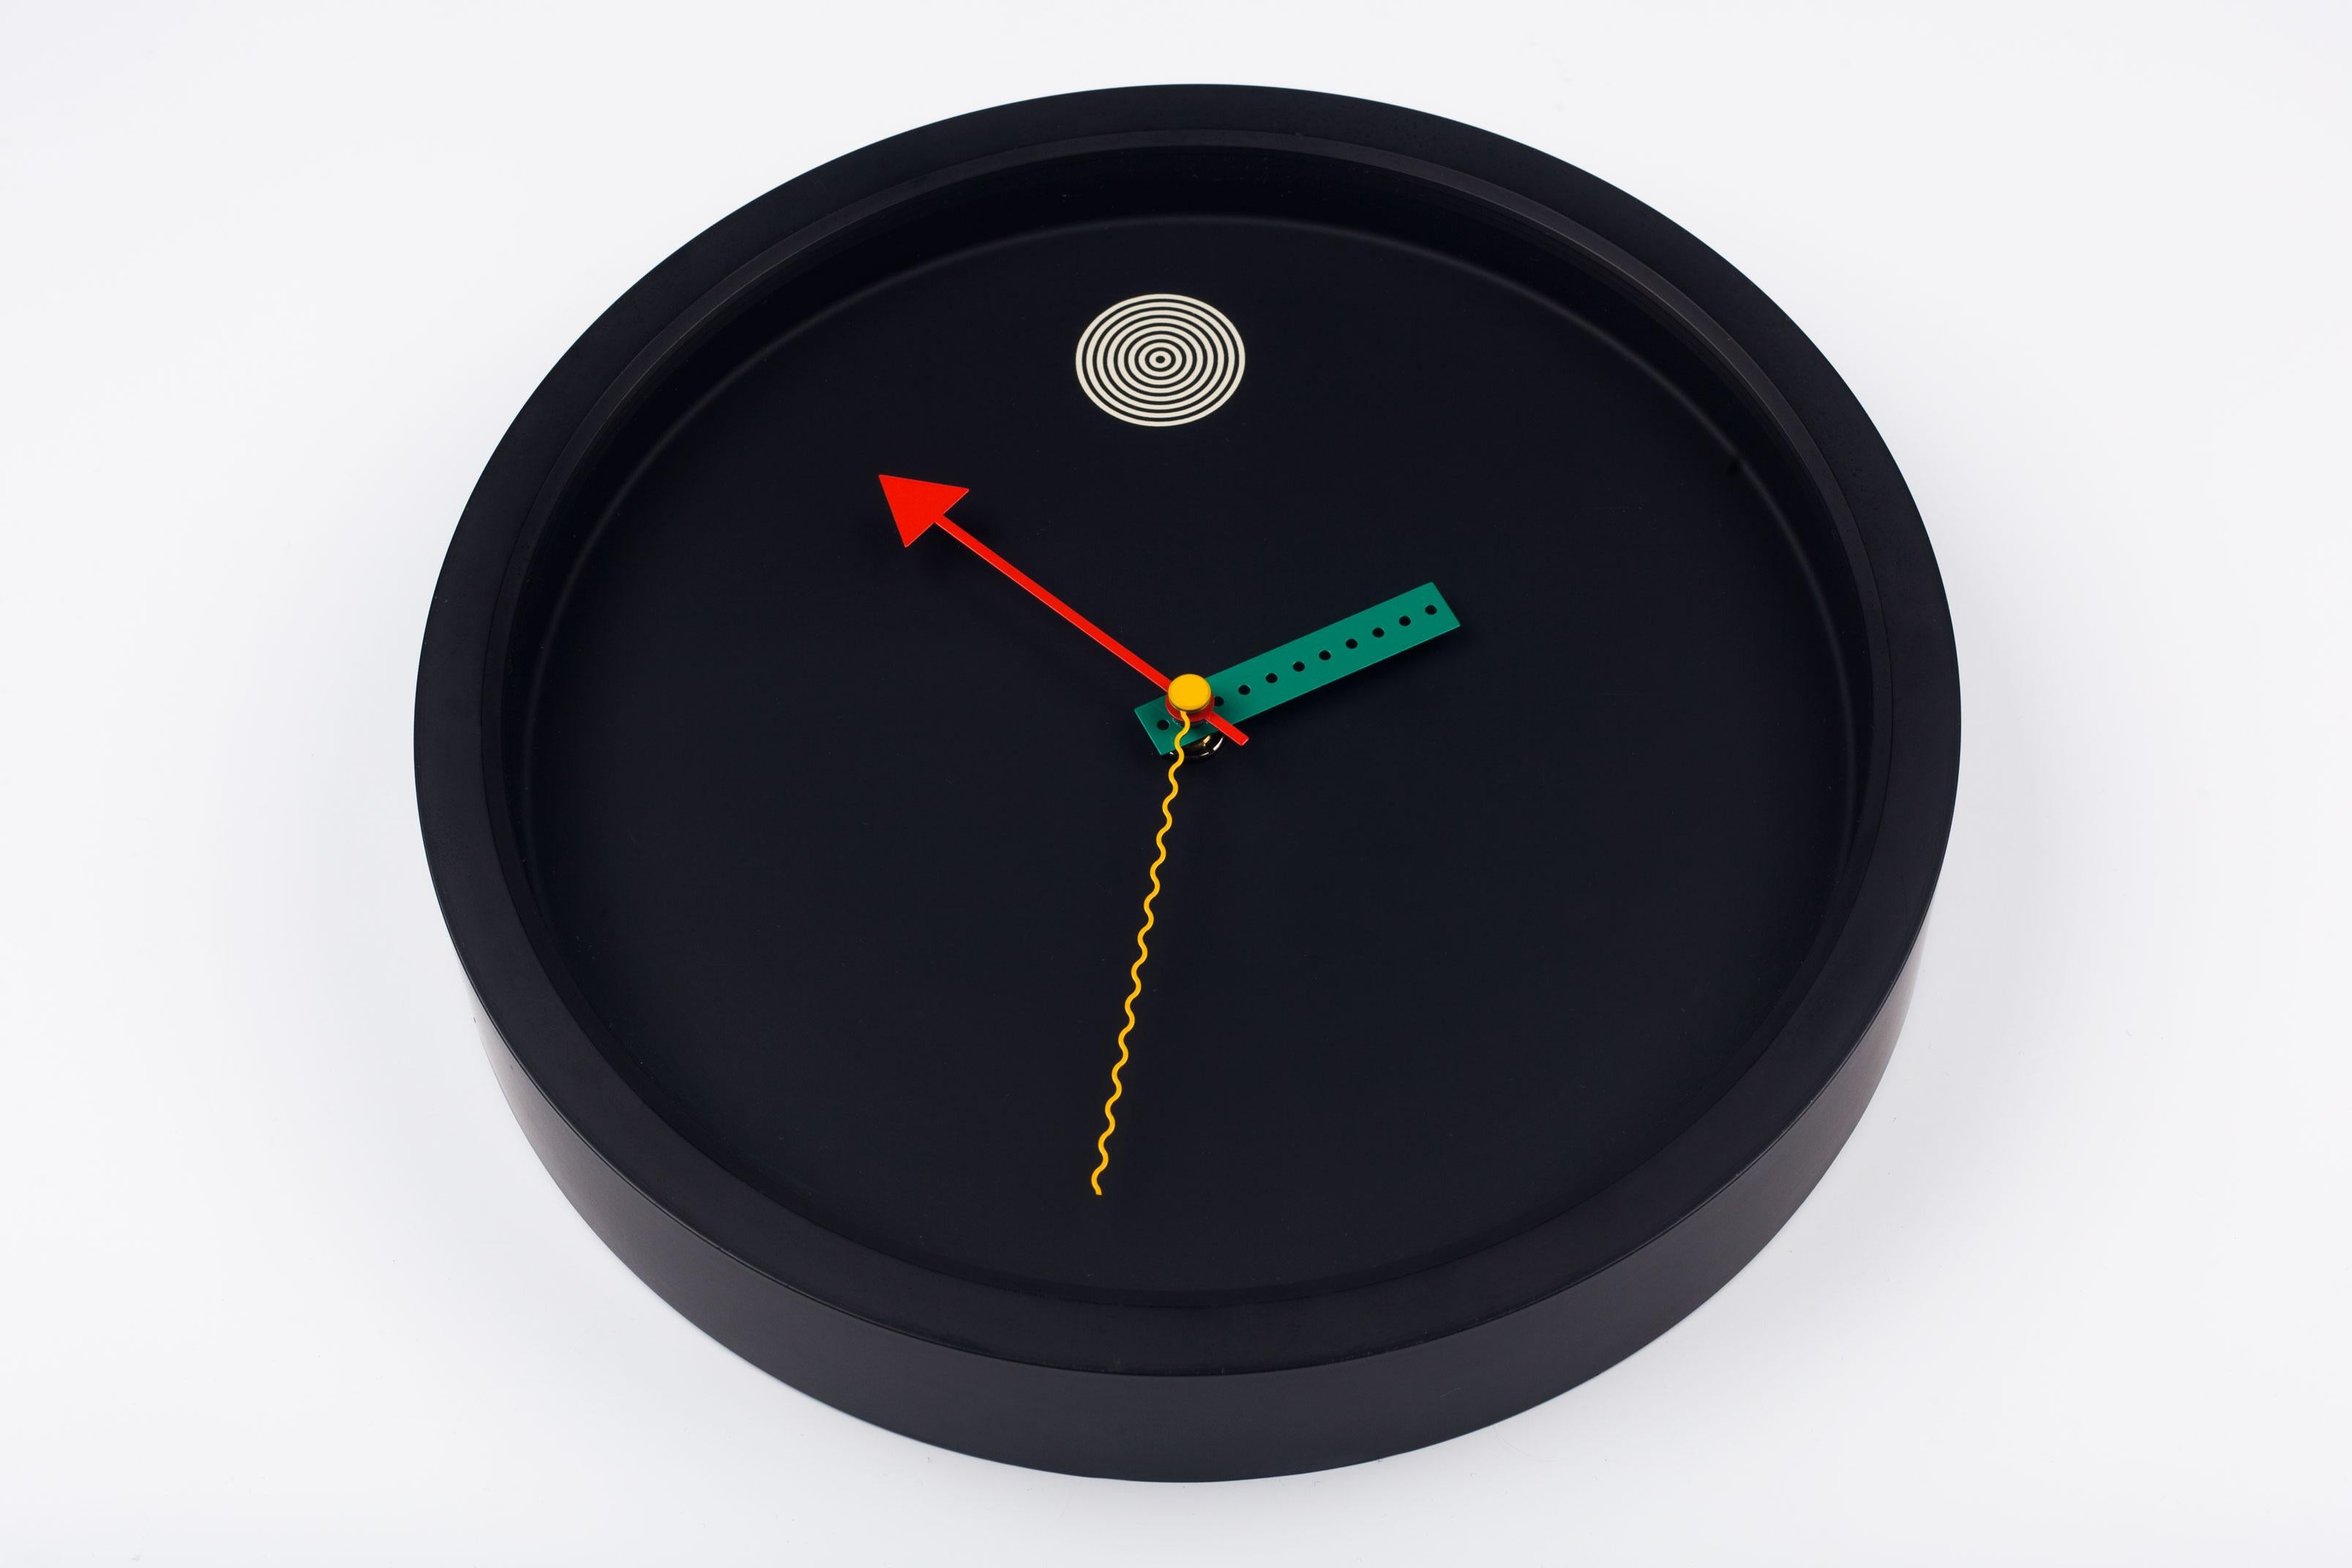 Black Wall Clock Postmodern Black Wall Clock By Shohei Mihara For Wakita Japan 1980s